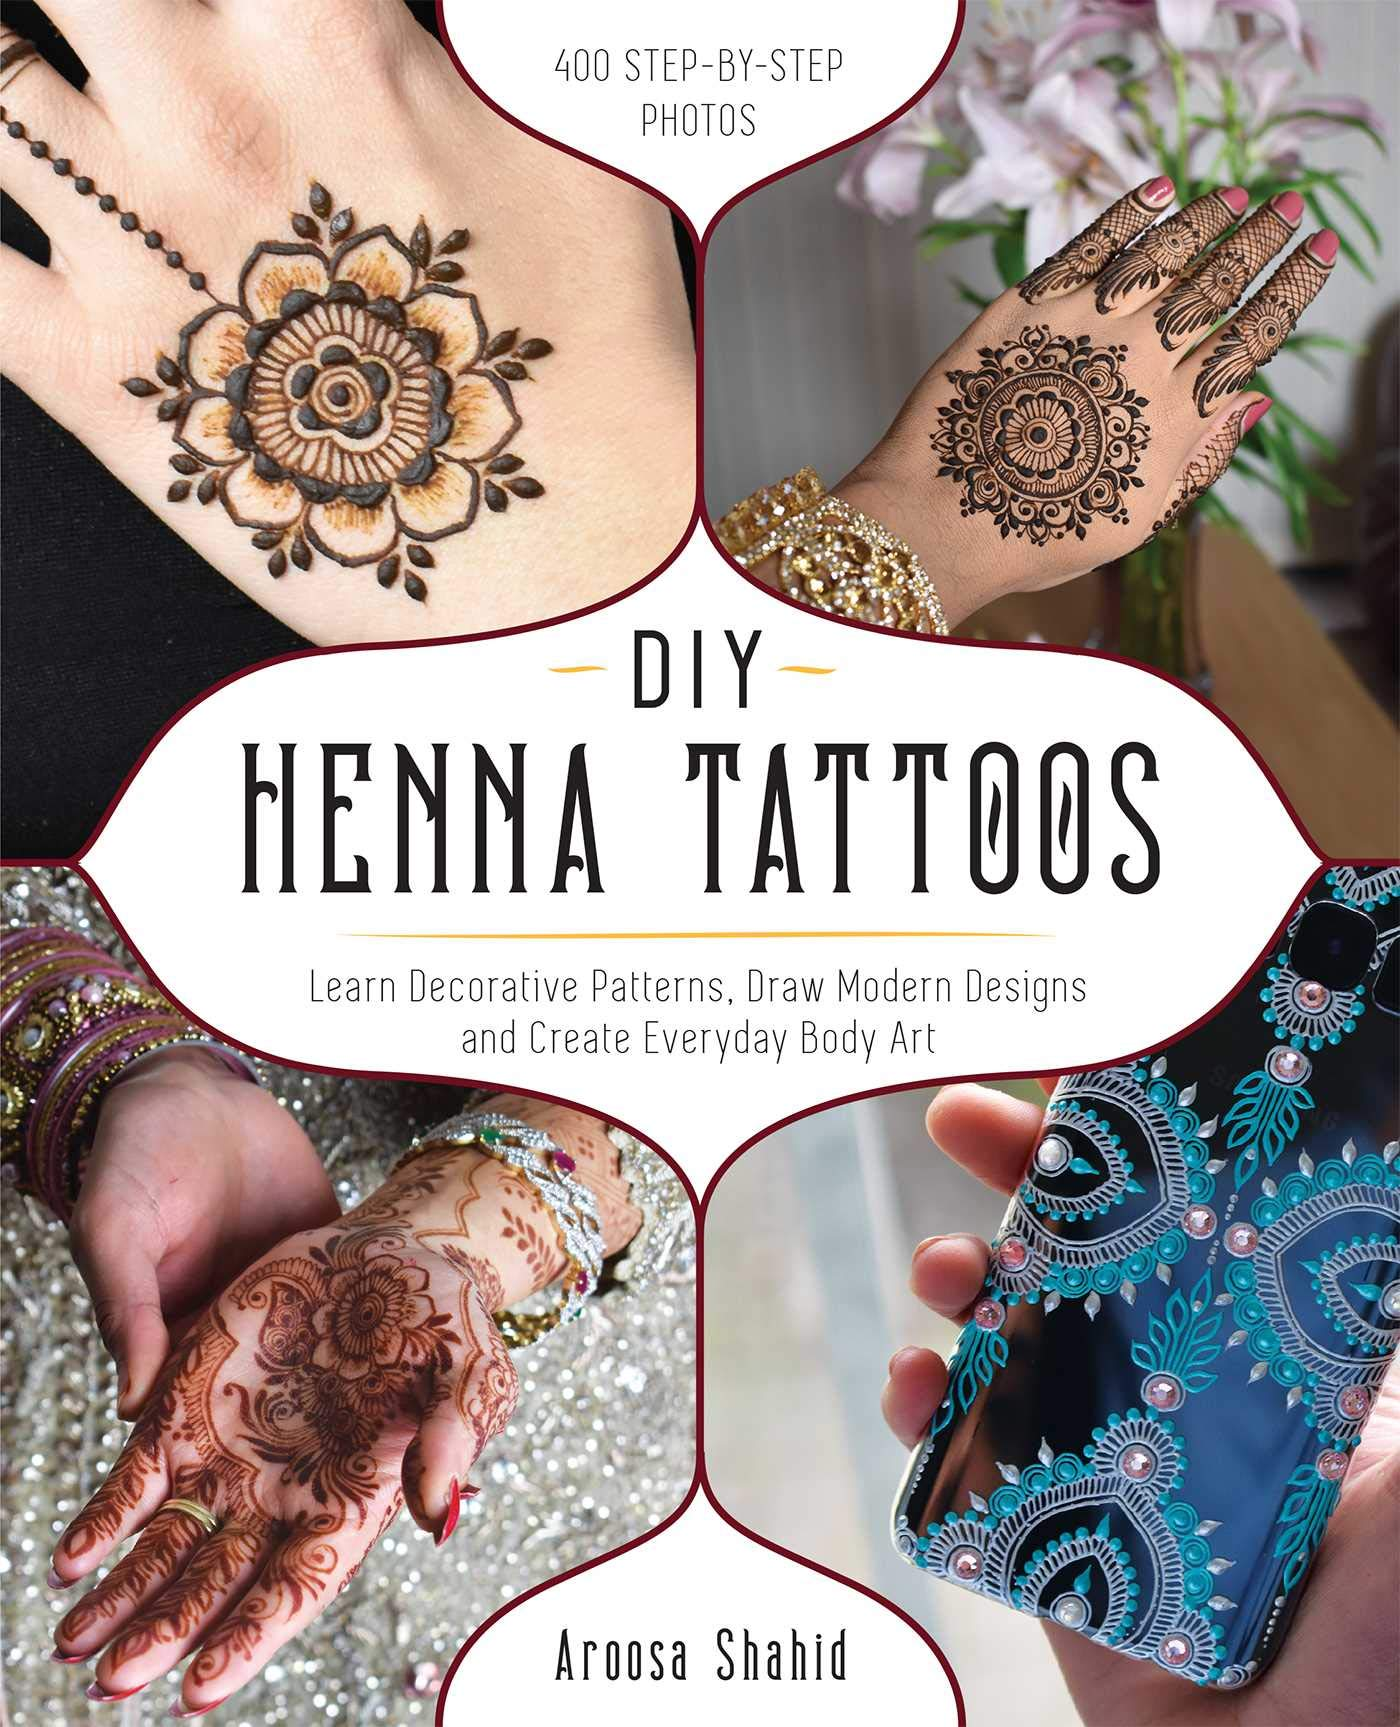 Diy Henna Tattoos: Learn Decorative Patterns, Draw Modern Designs ...